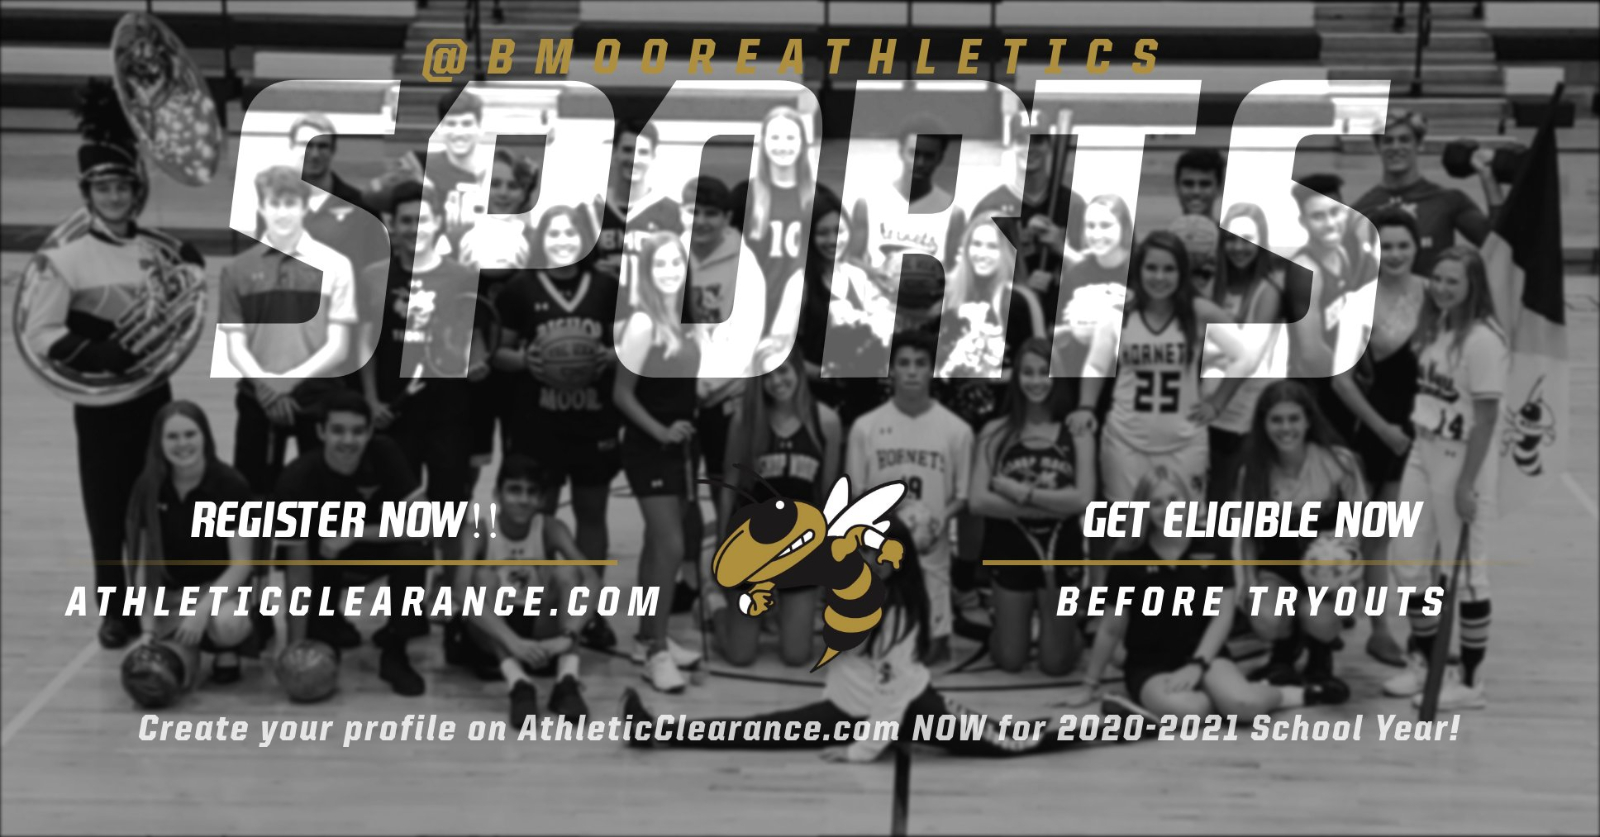 REGISTER NOW ON AthleticClearance.com for 2020-2021 School Year!